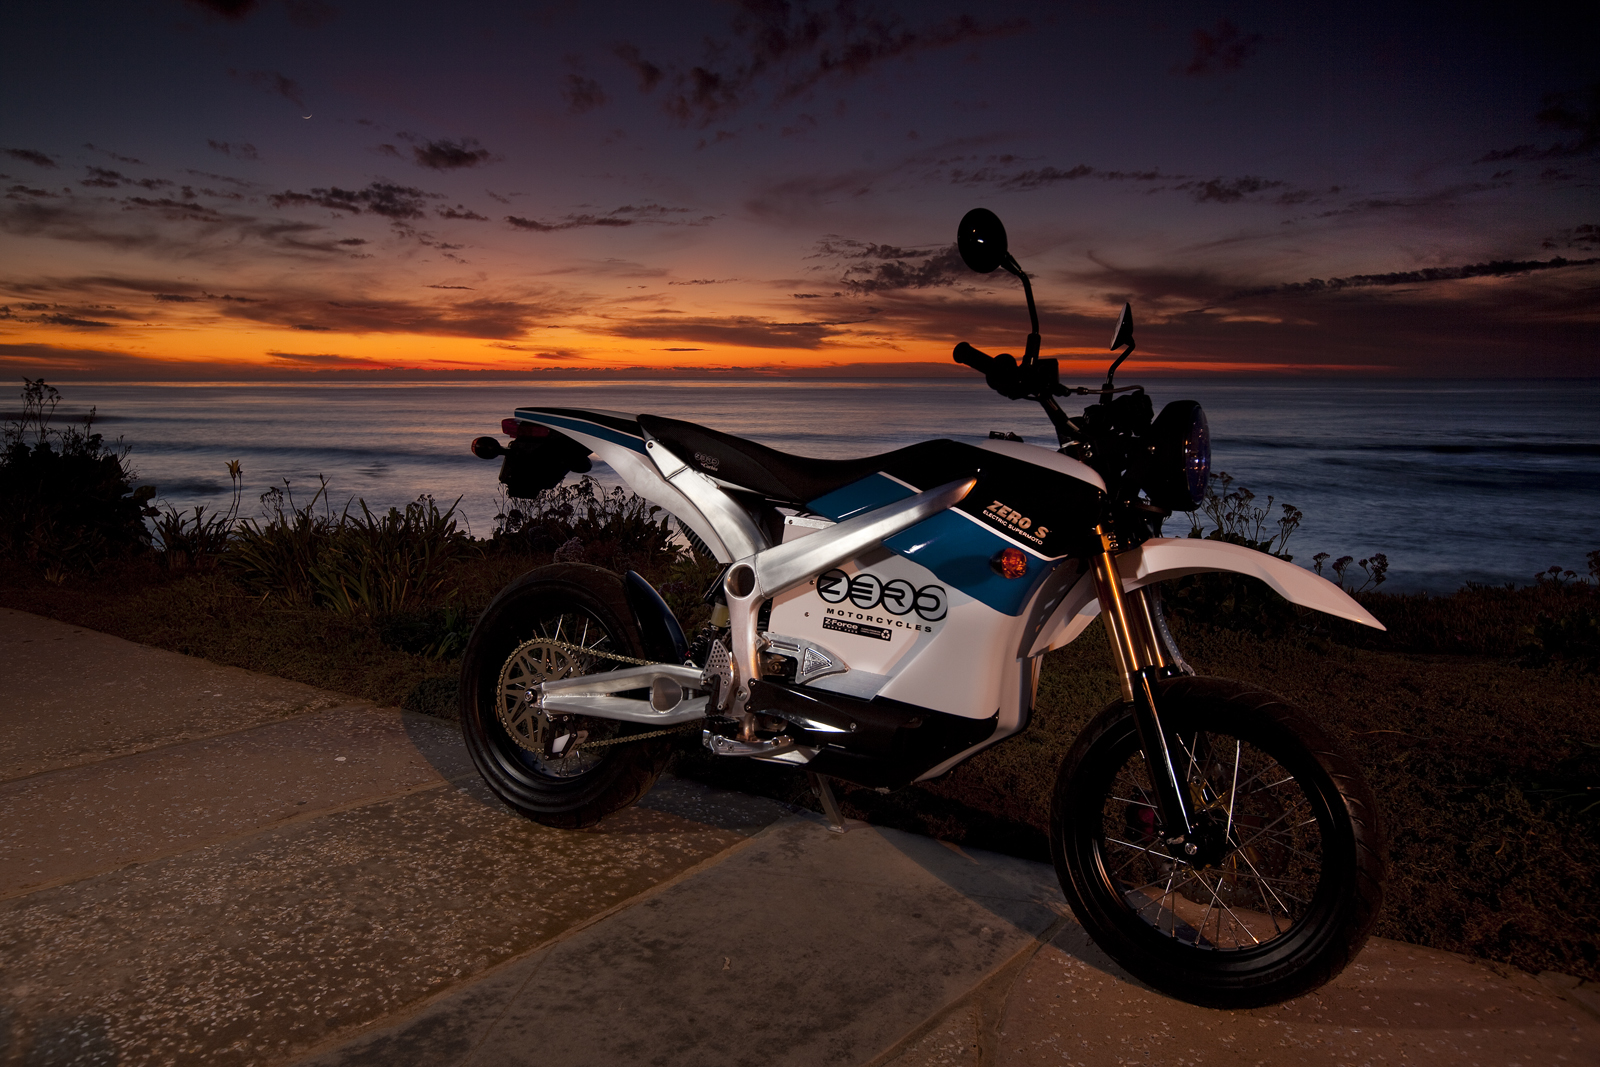 2010 Zero S Electric Motorcycle: San Diego - Sunset